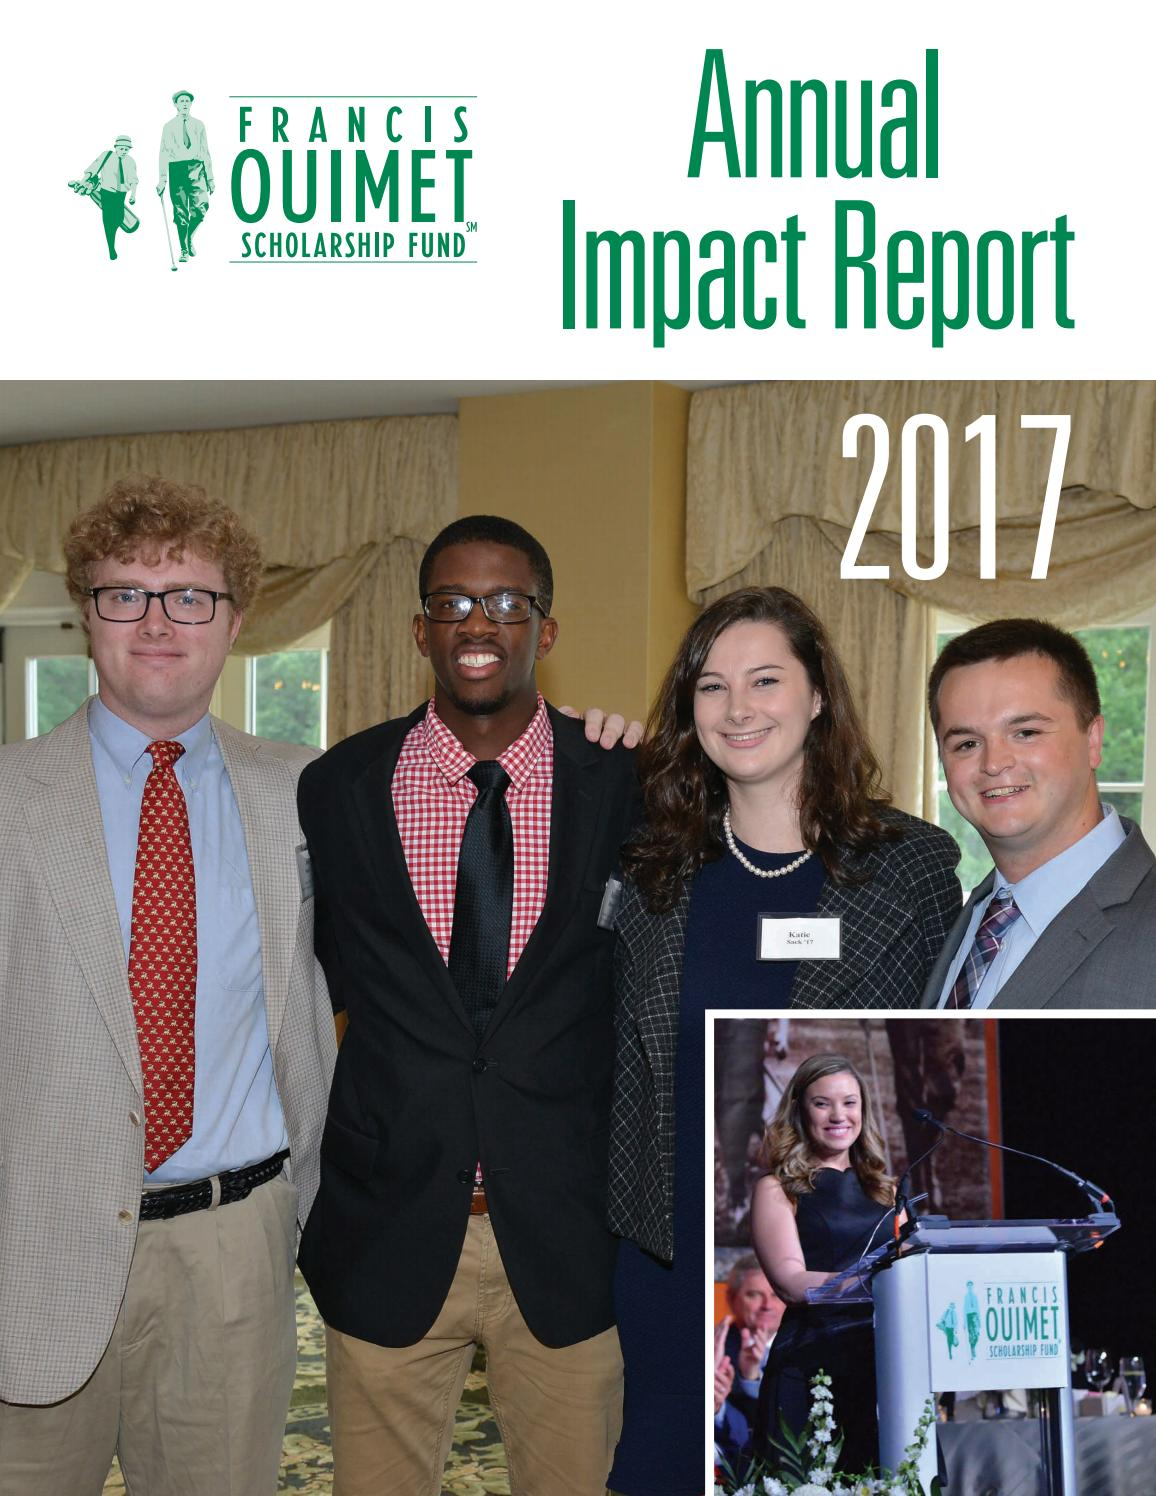 2017 Ouimet Fund Annual Impact Report By Francis Ouimet Scholarship Fund Issuu